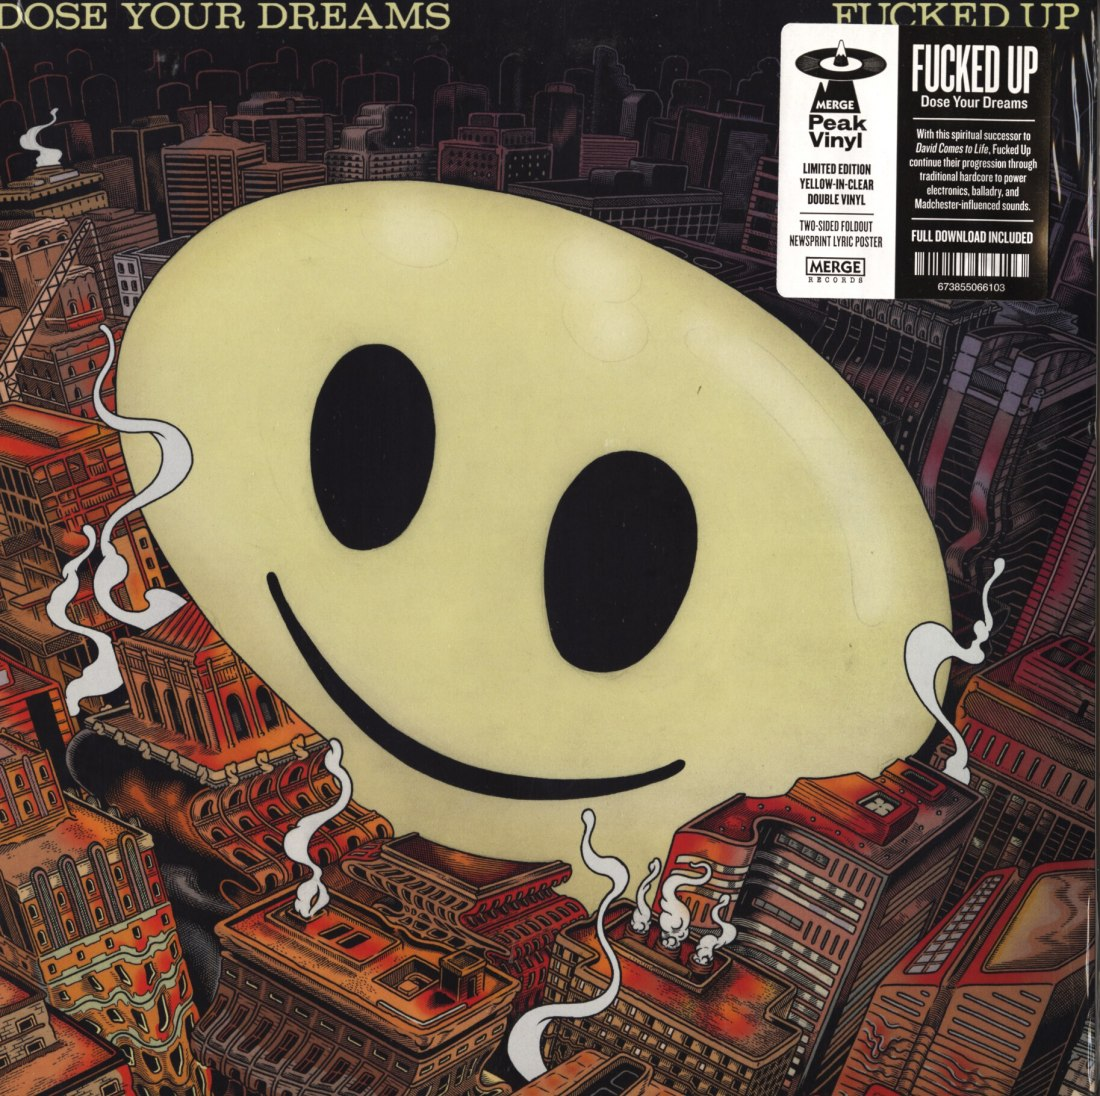 Fucked Up - Dose Your Dreams - Ltd Ed, Yellow In Clear Colored Double Vinyl, Merge, 2018